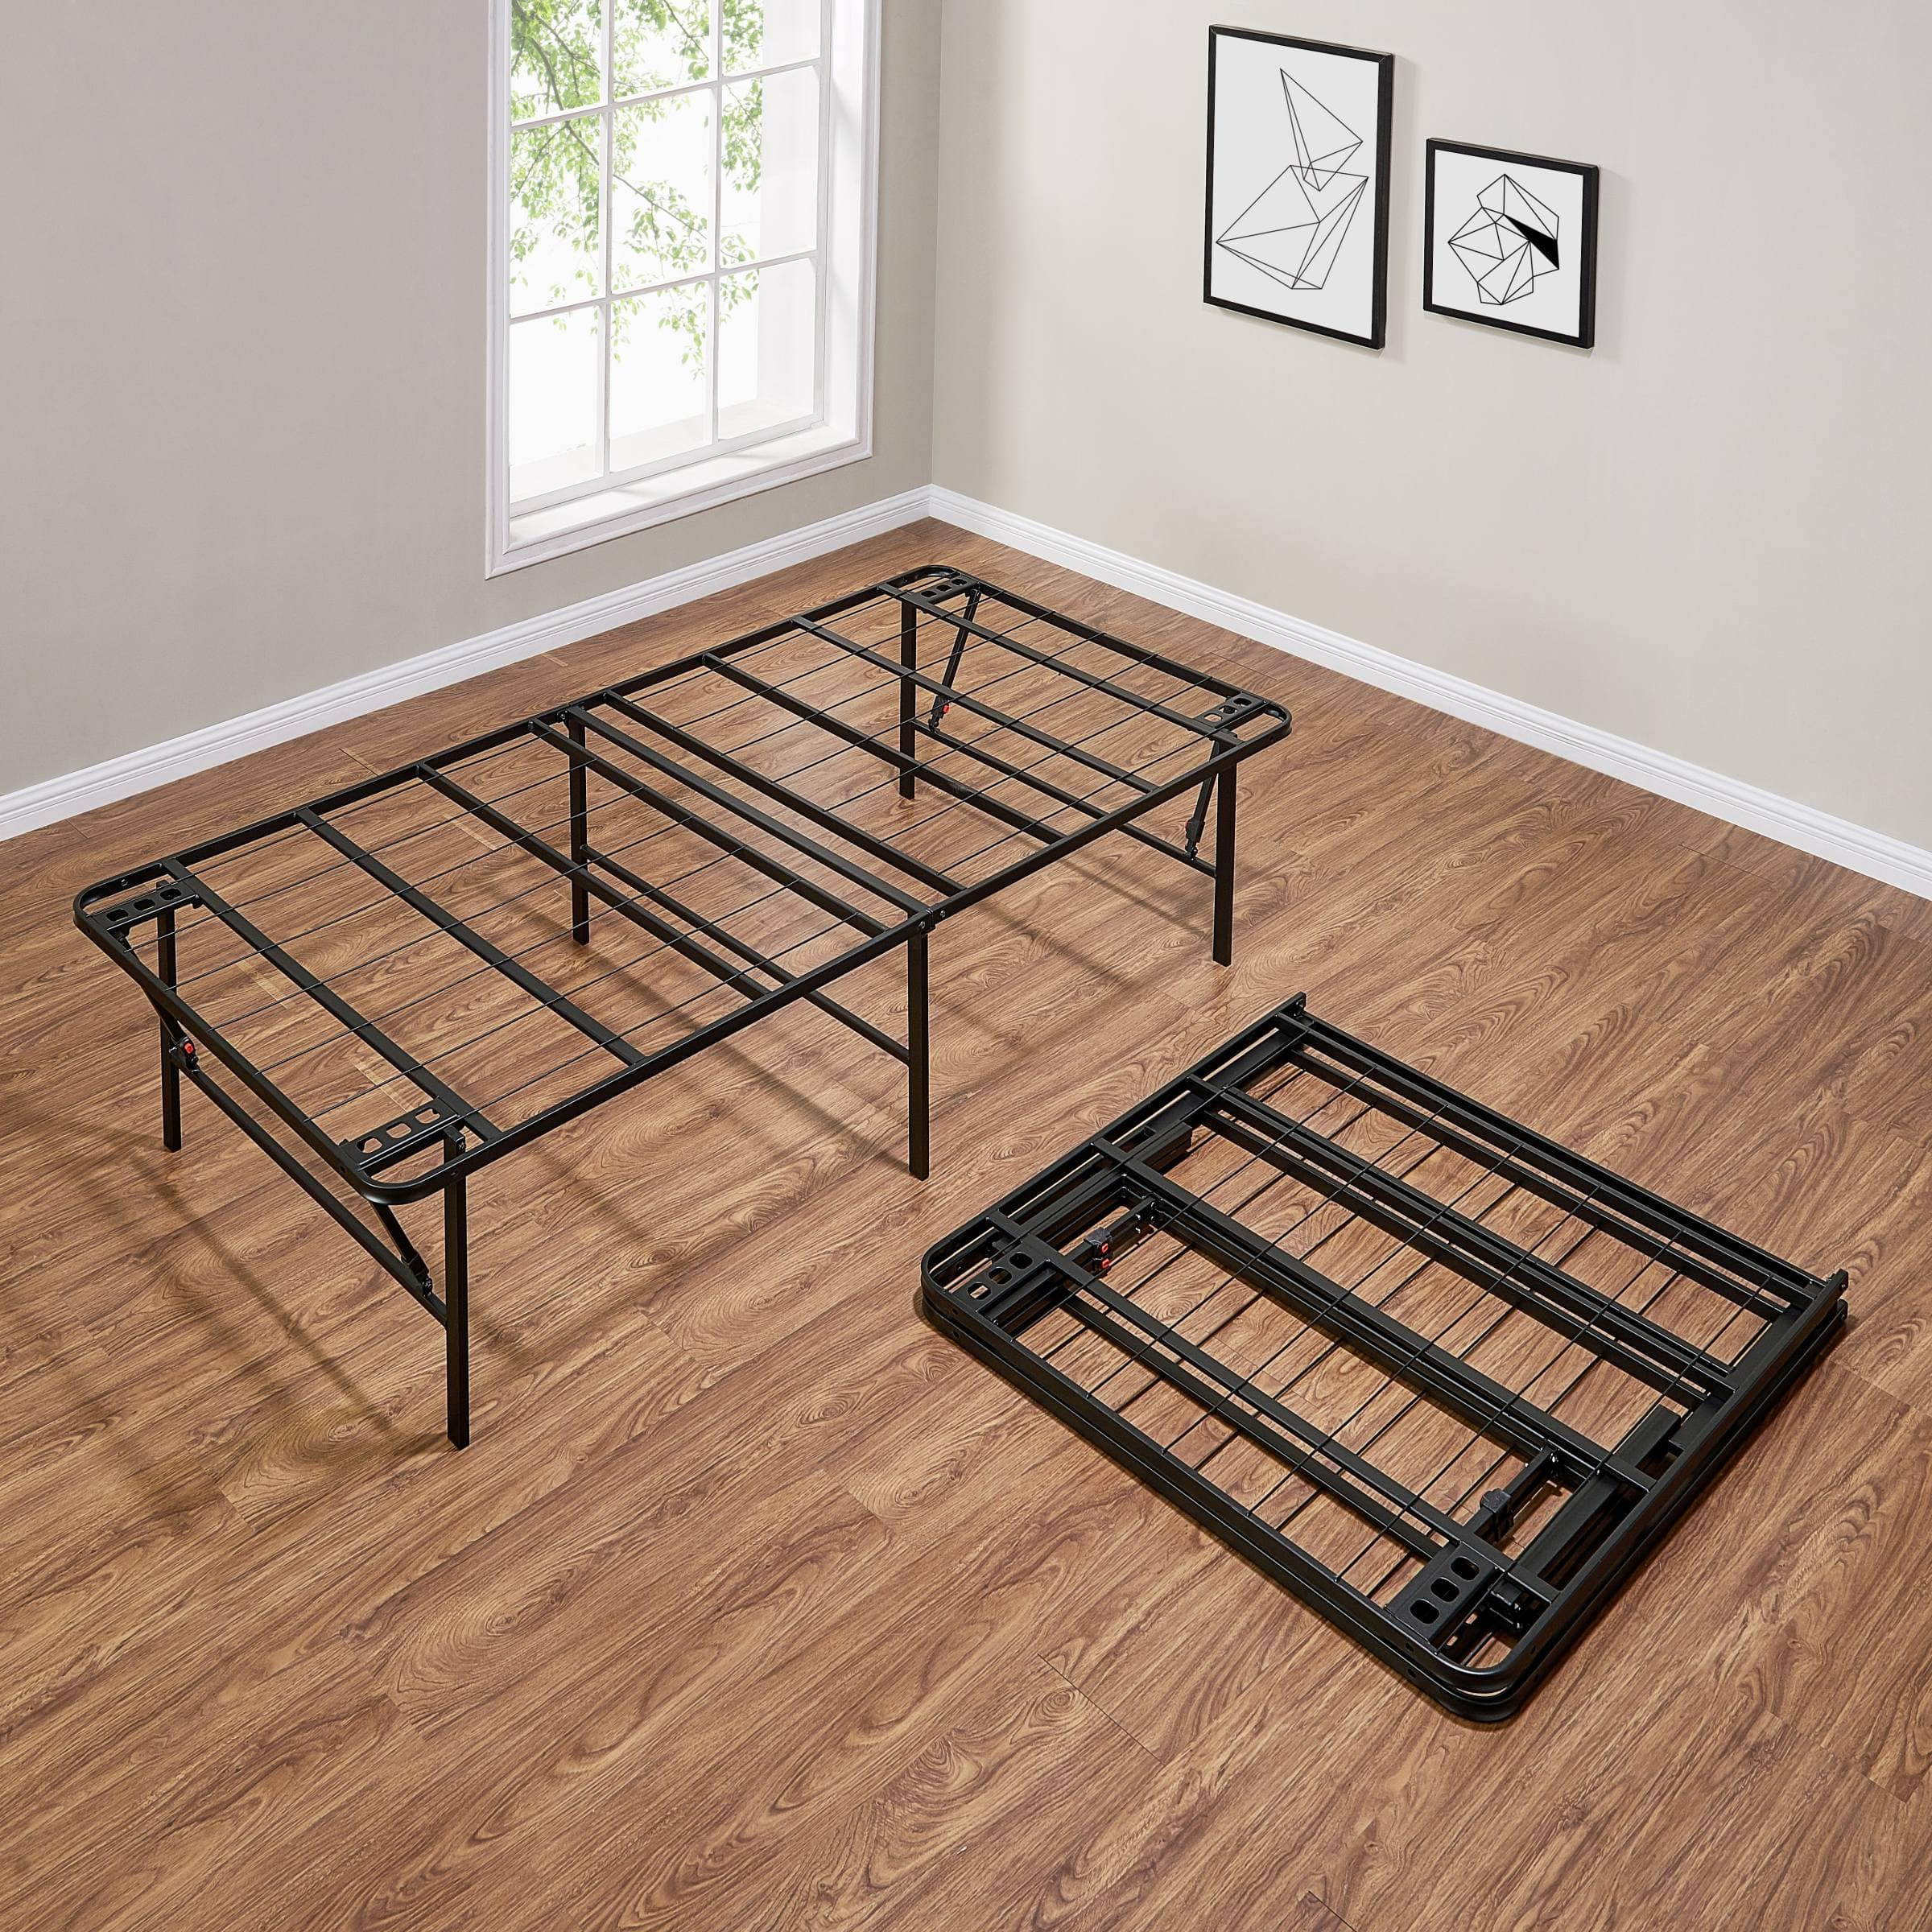 Mainstays 18 inch High Profile Foldable Steel Bed Frame Twin $49 Queen $70 King $72